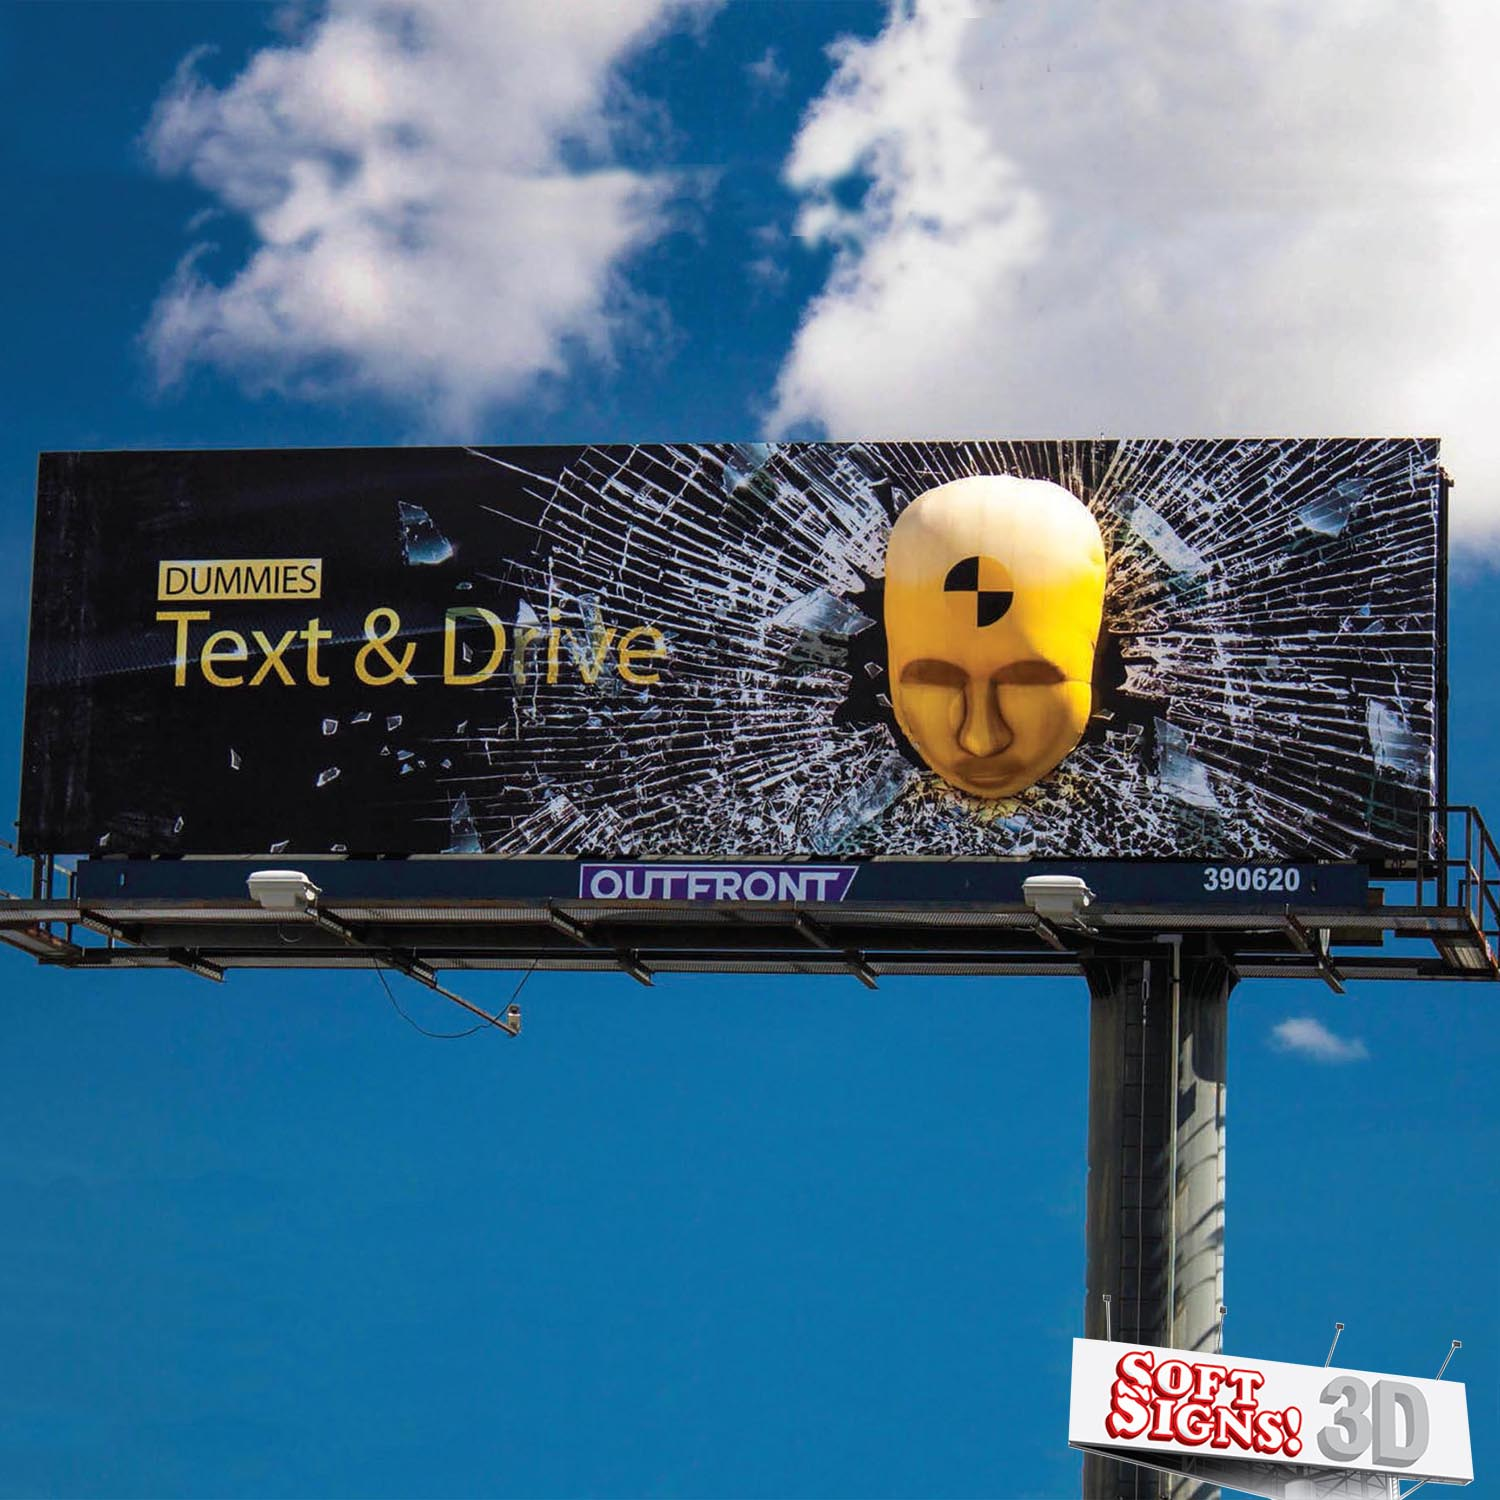 Dummies Text and Drive by Soft Signs 3D